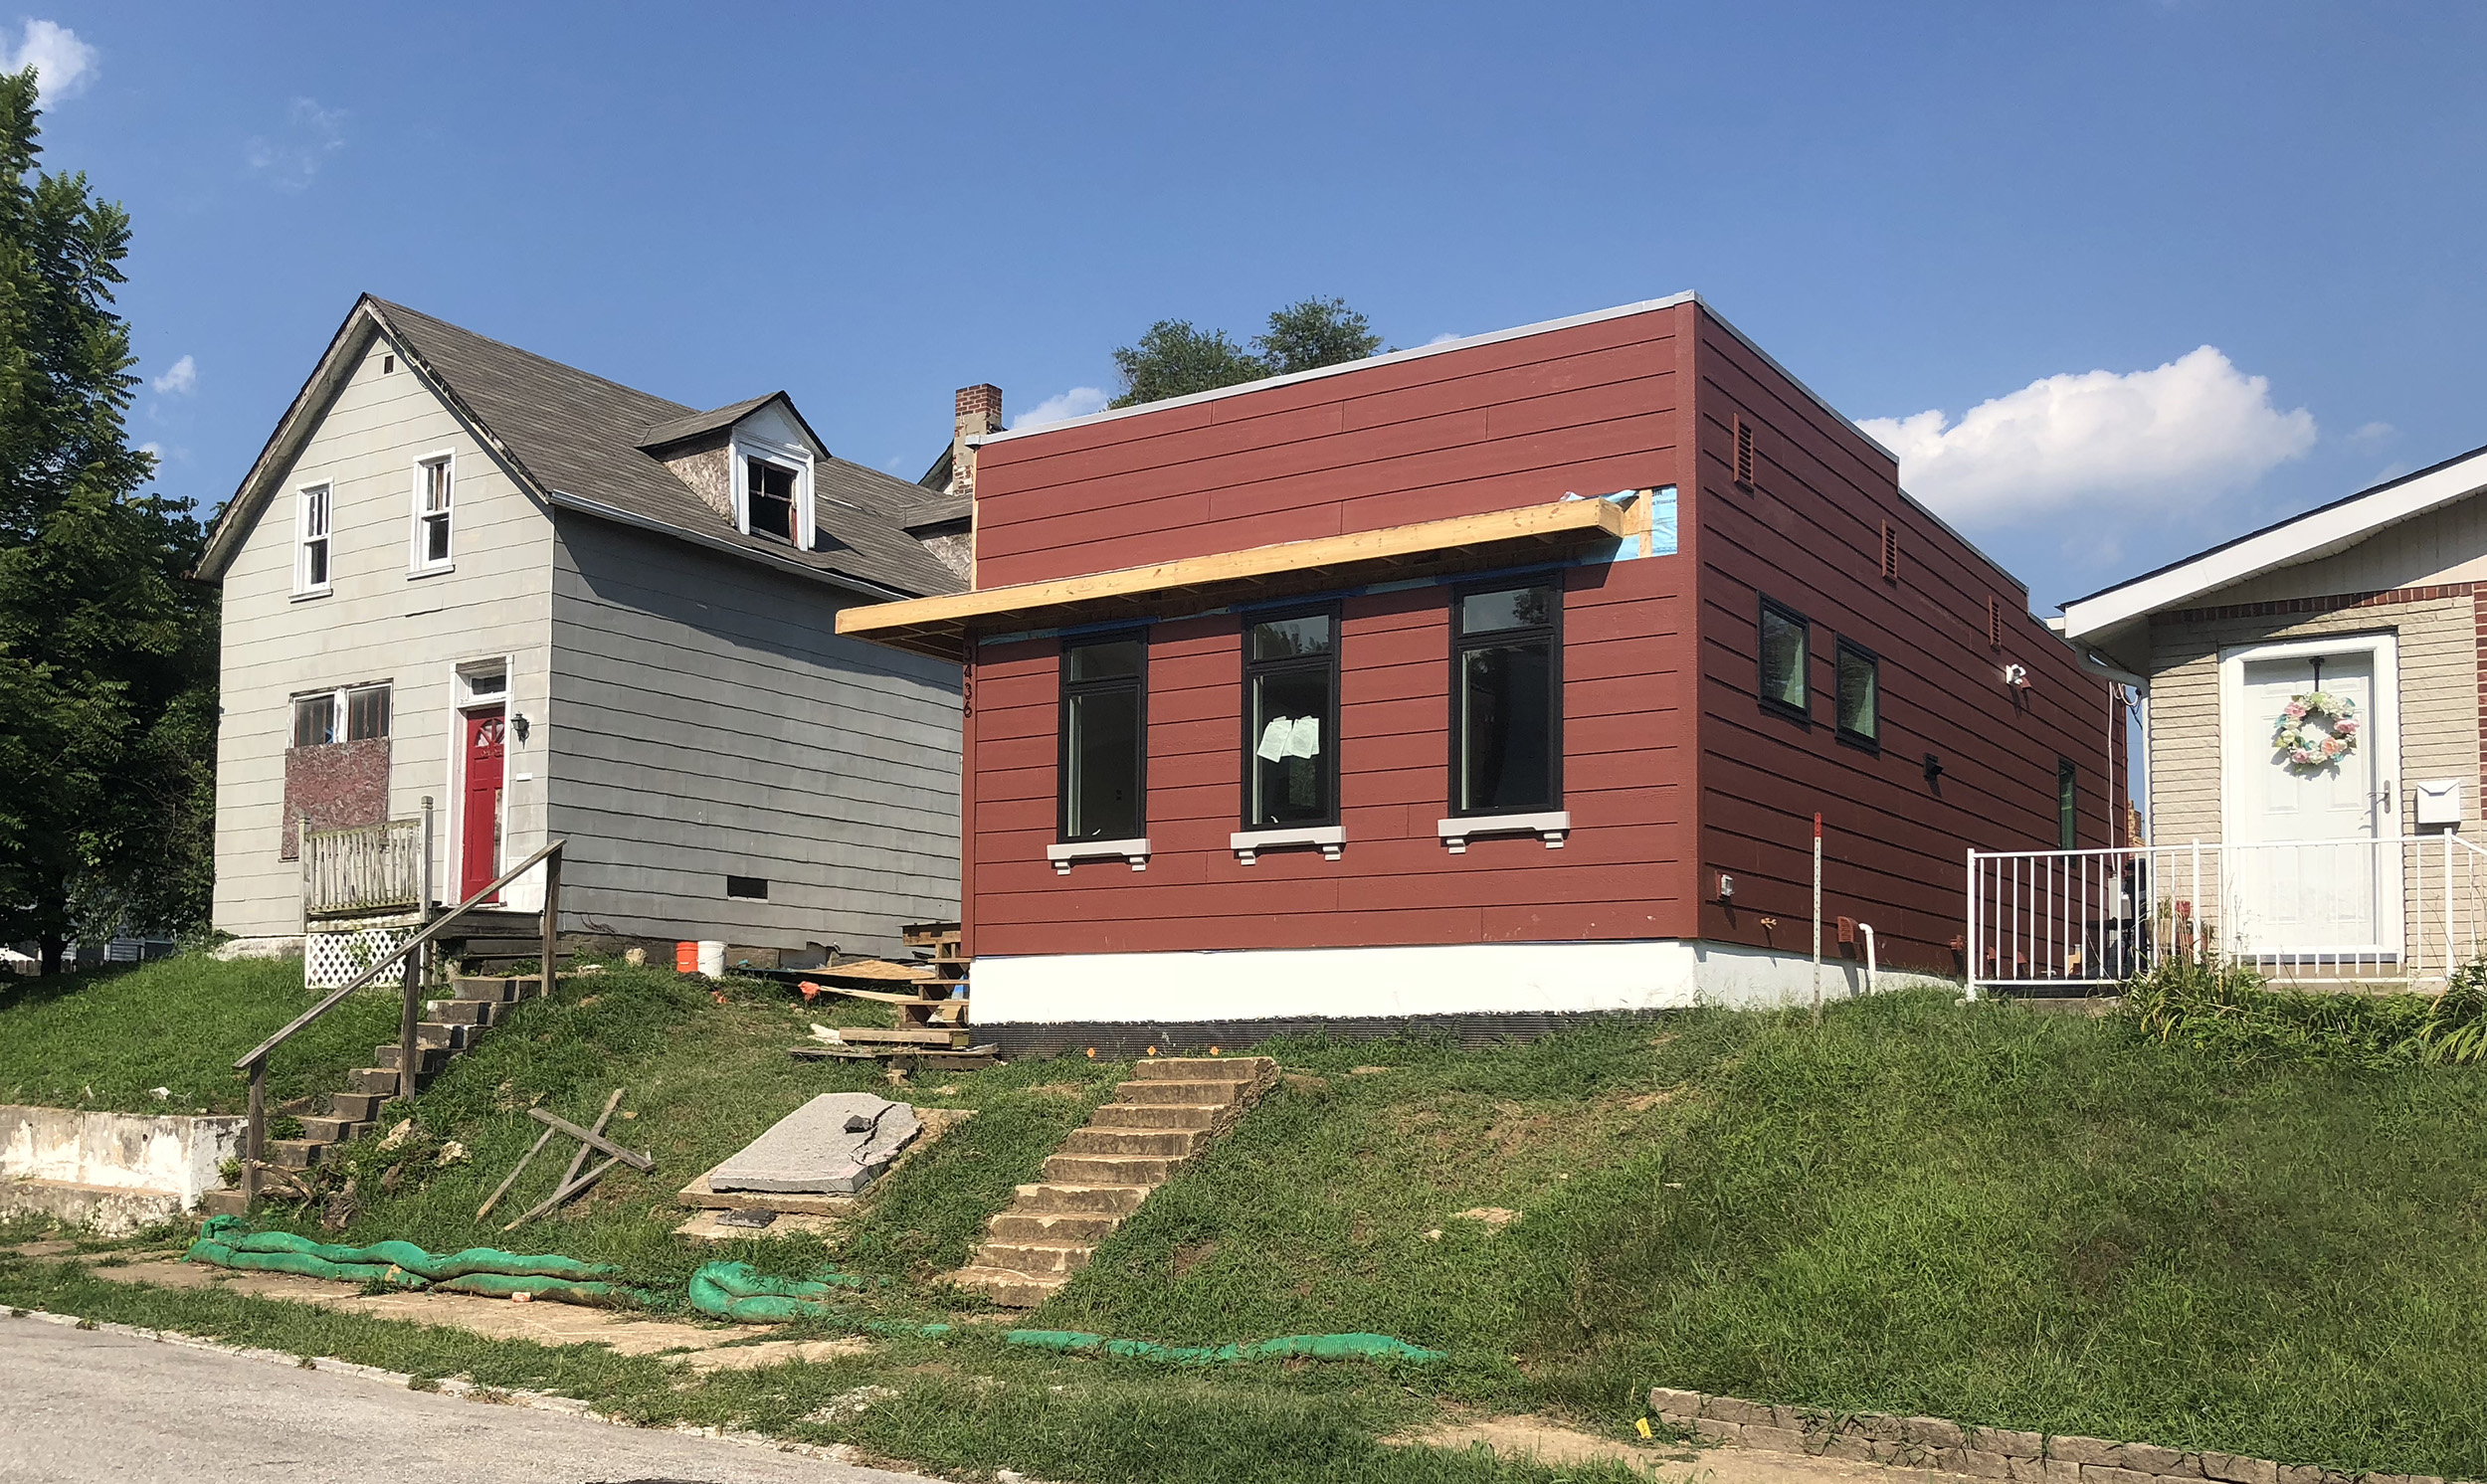 Key Changes to City Building Codes Effective Immediately